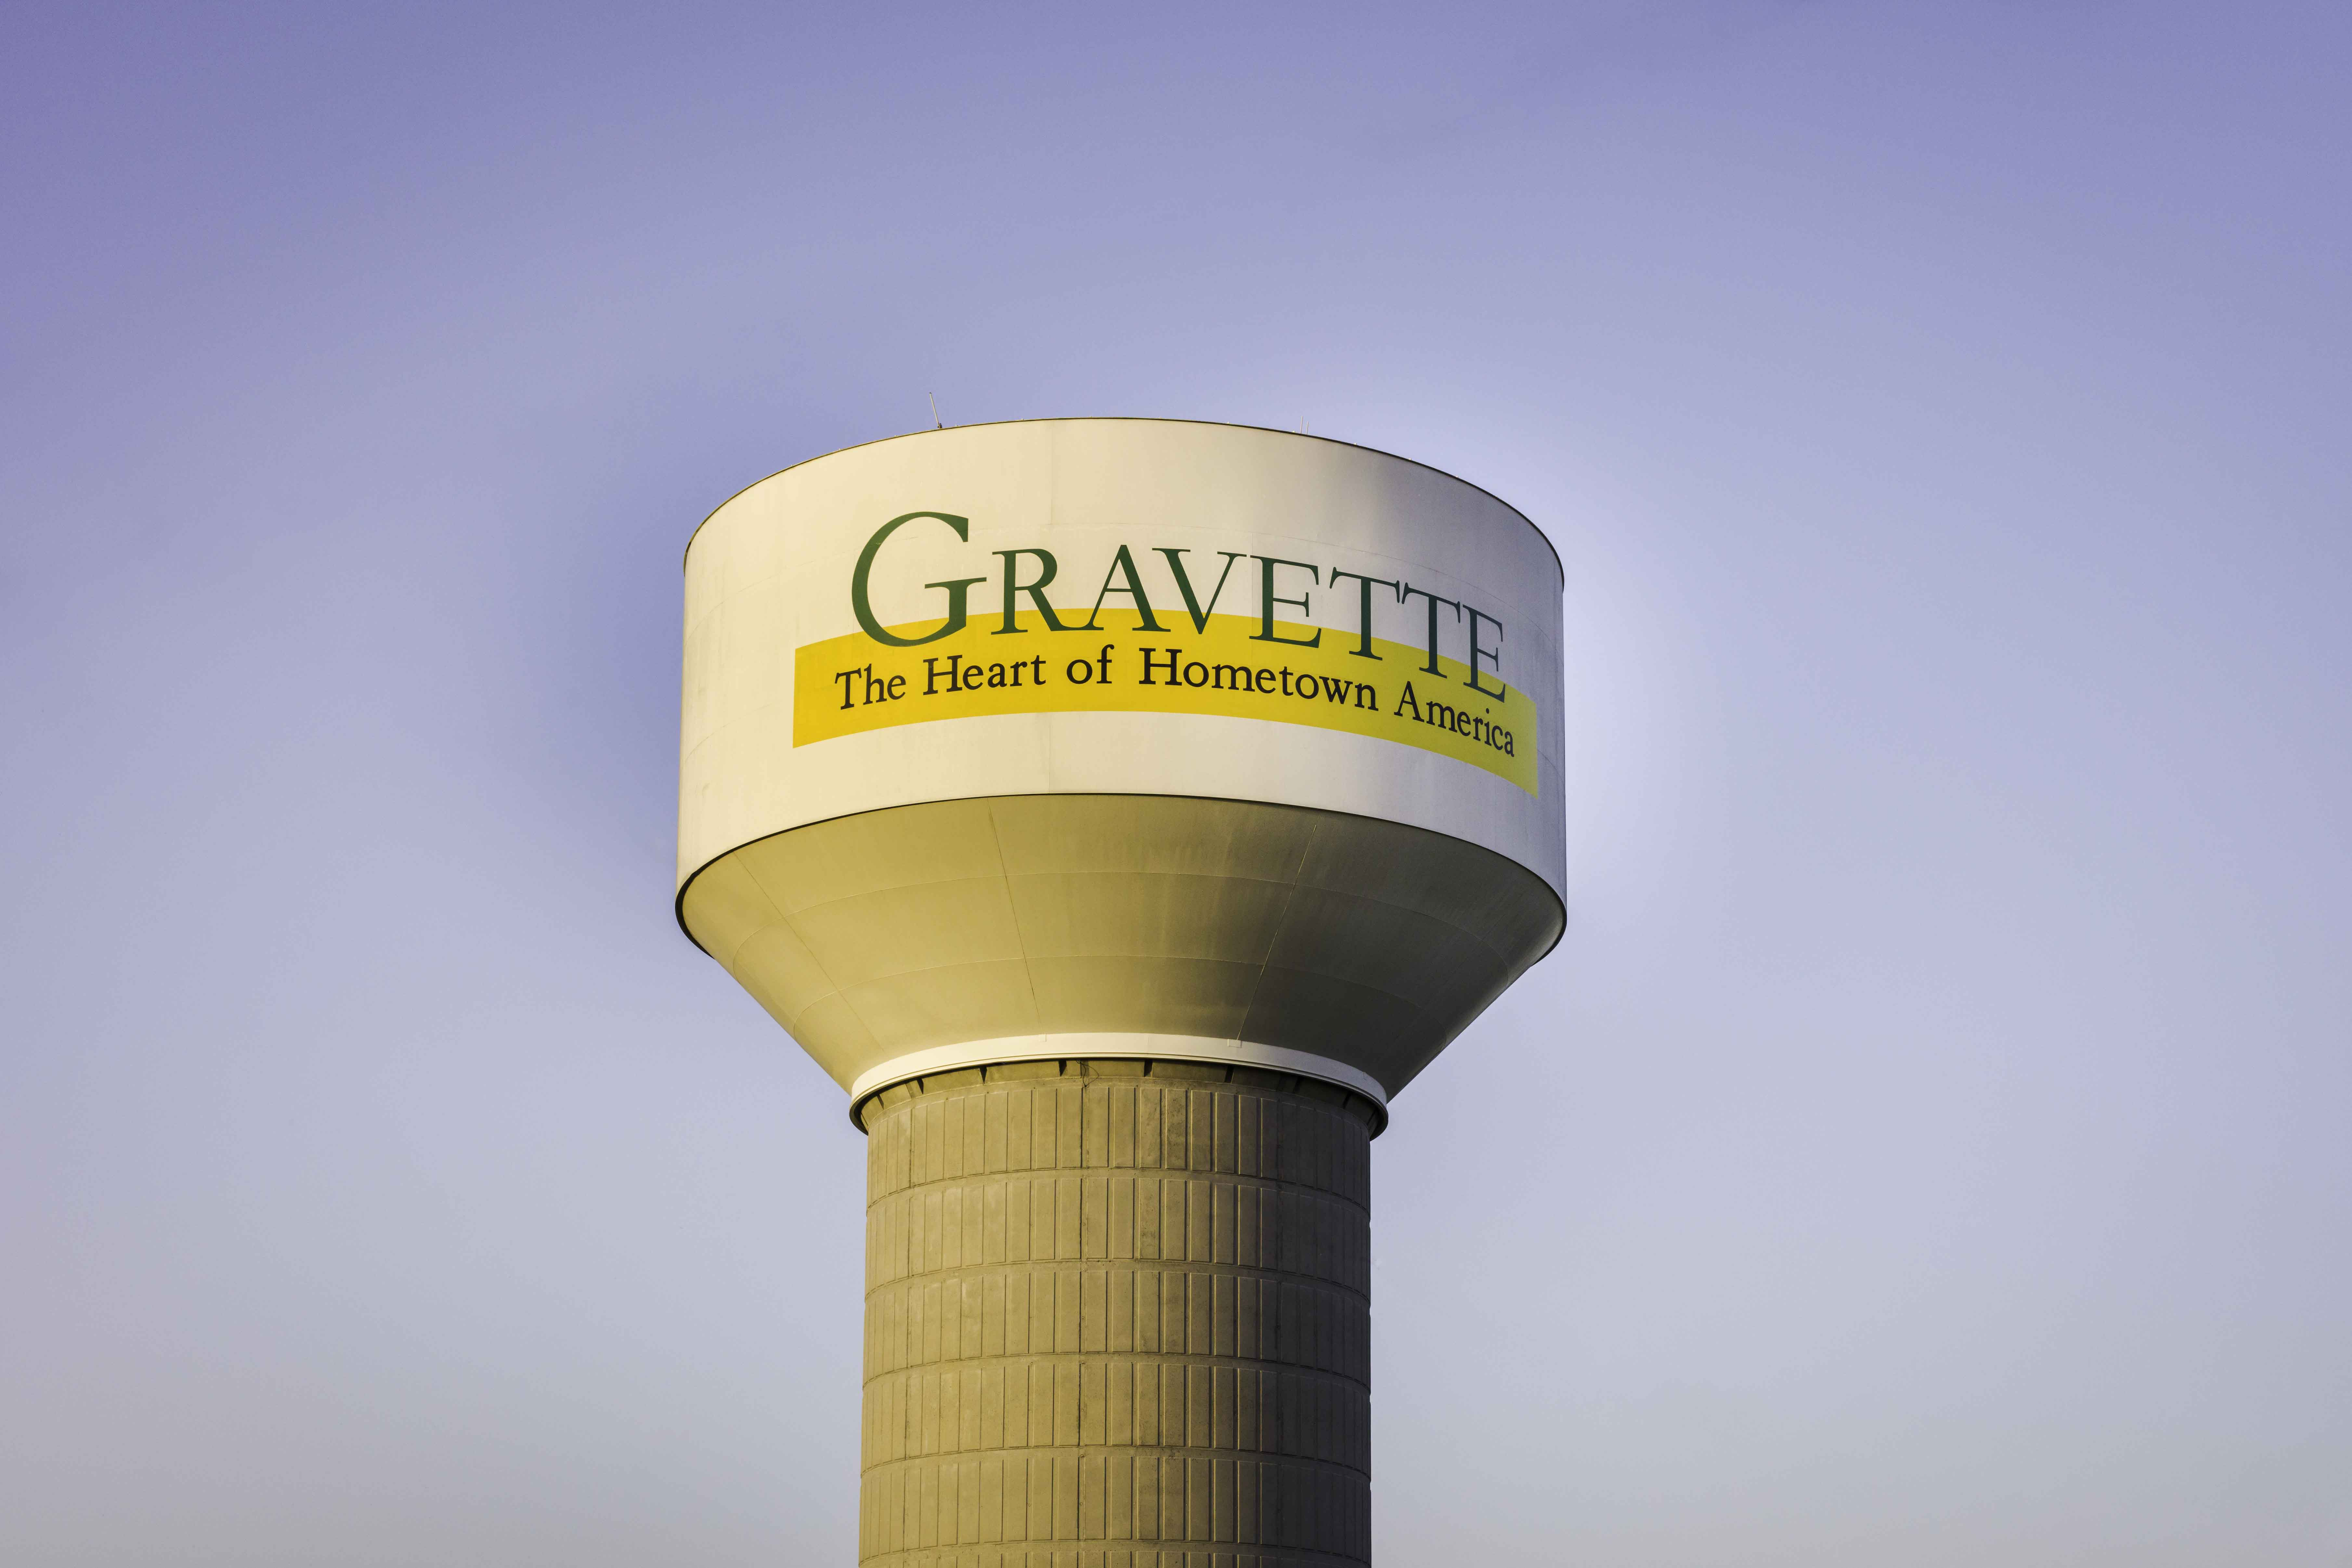 Gravette, water tower, photo